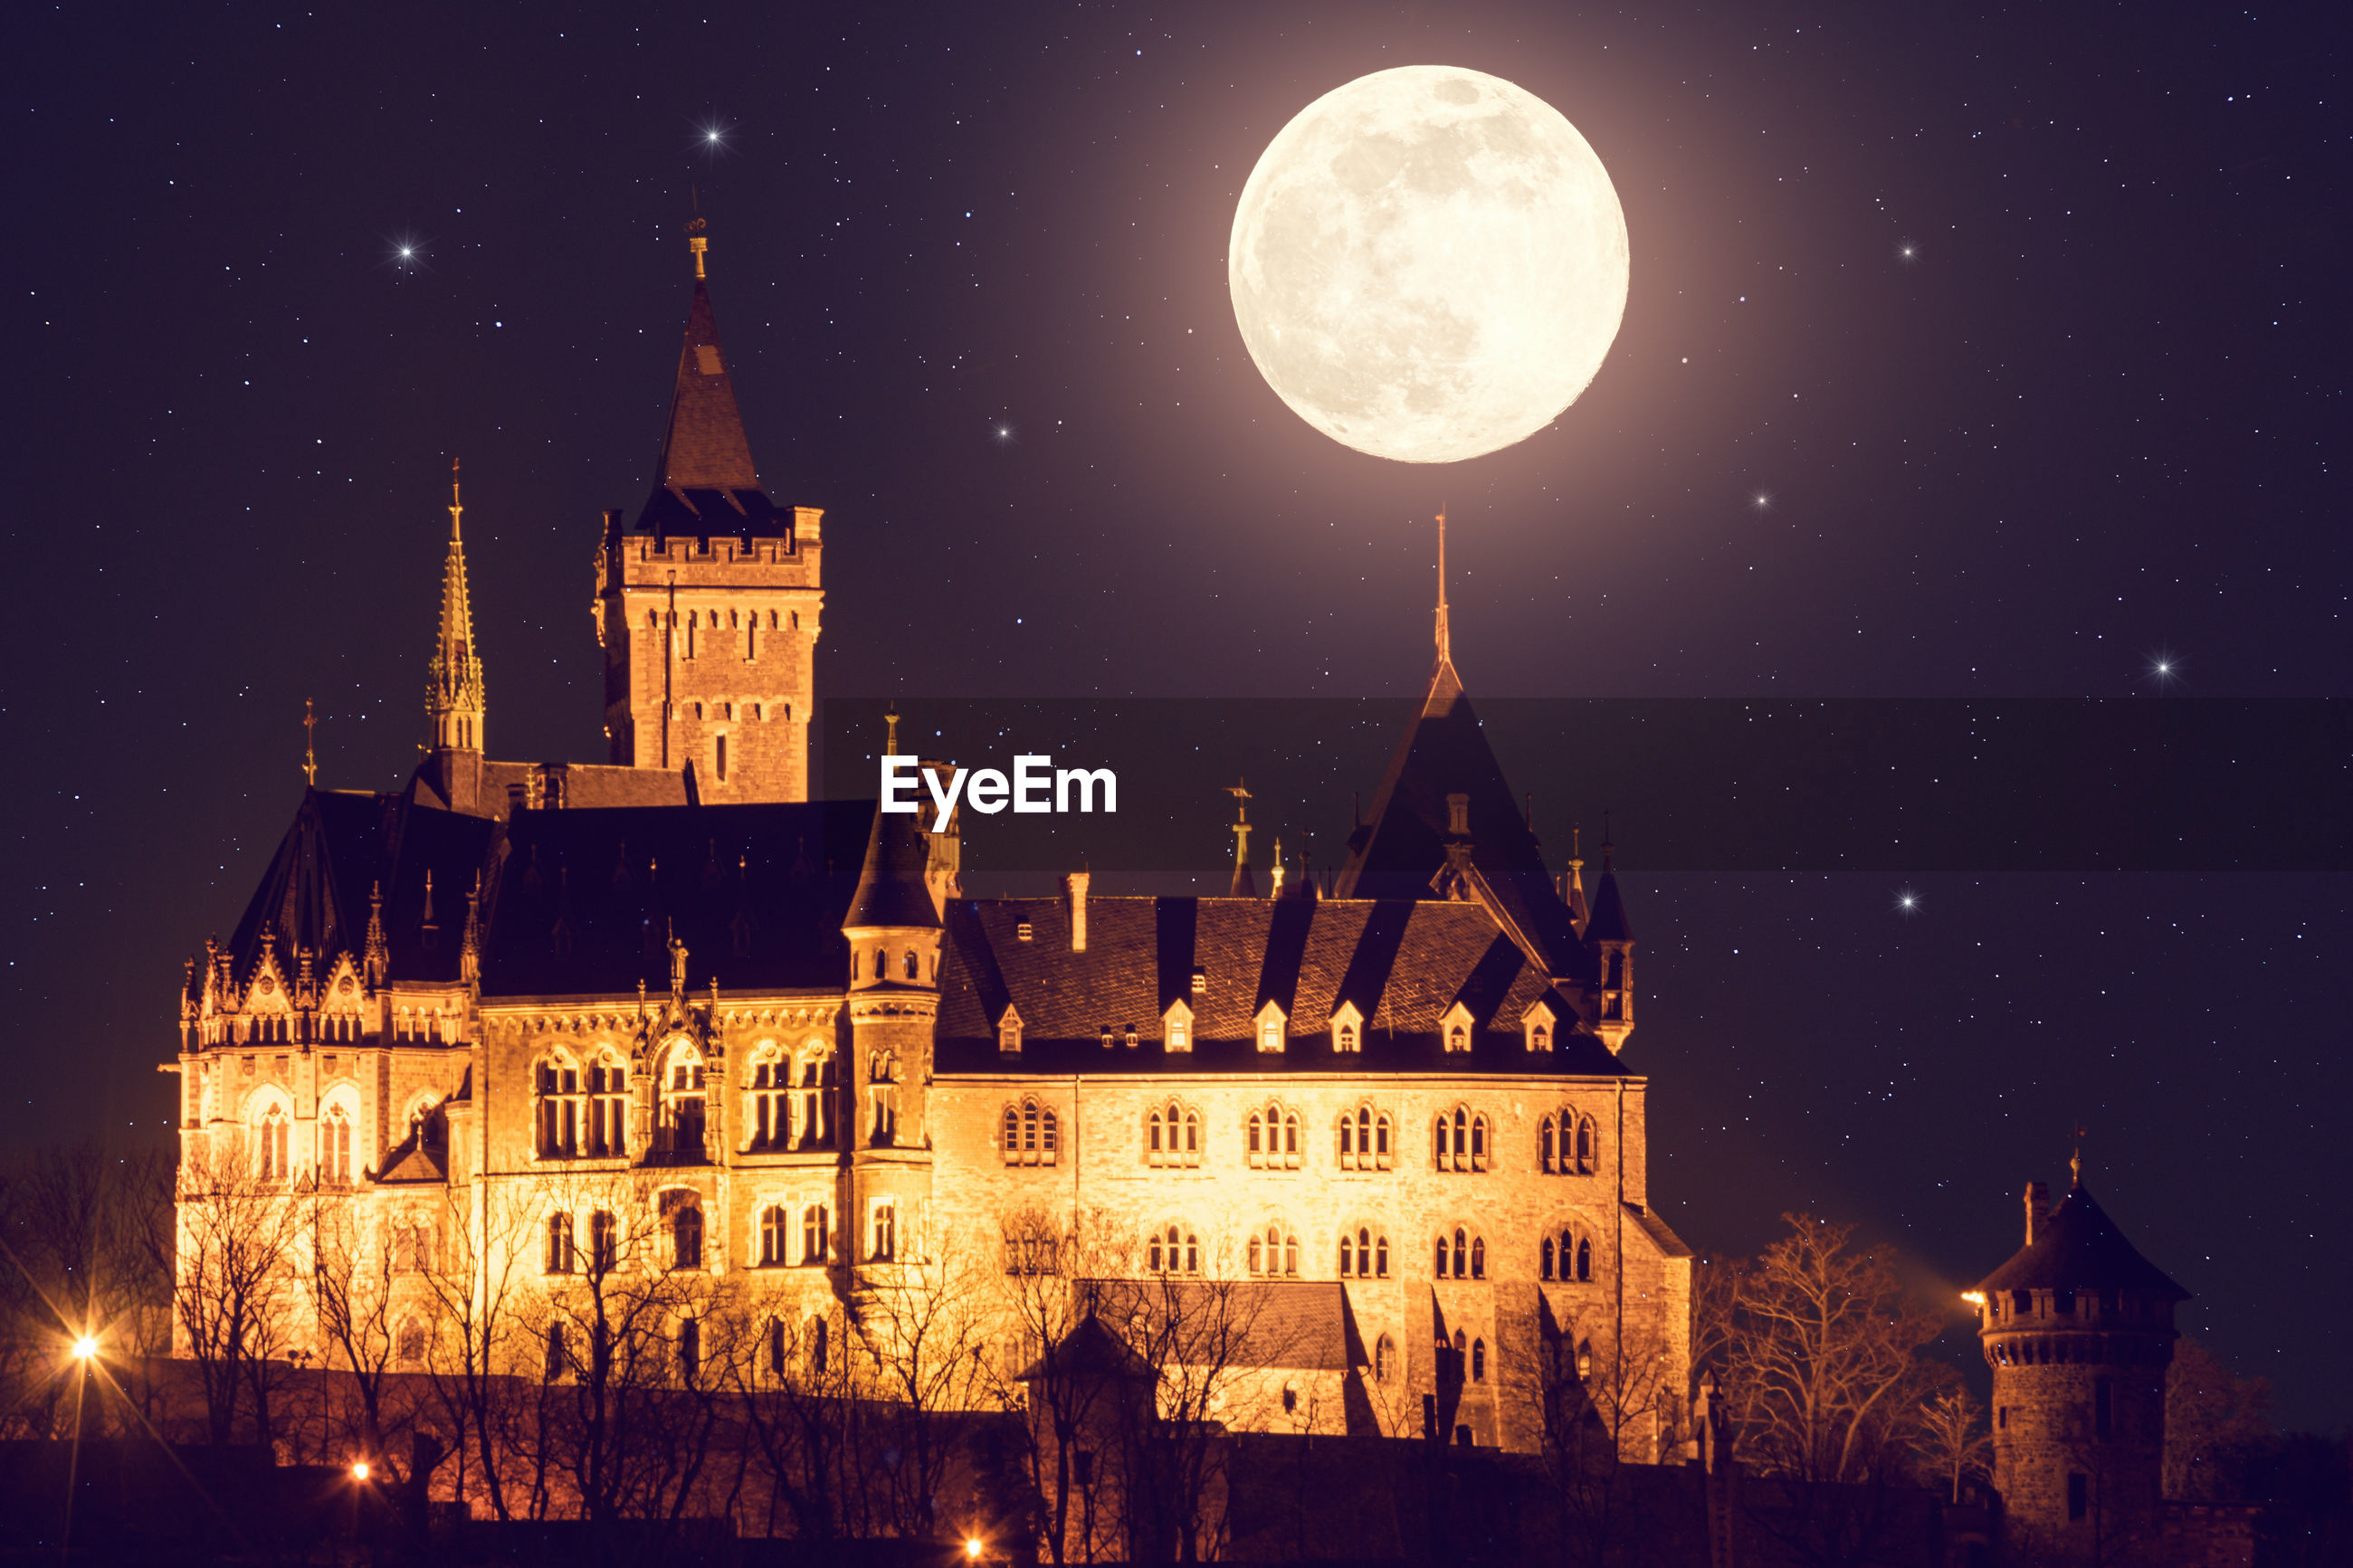 night, moon, architecture, building exterior, built structure, sky, space, astronomy, star, full moon, building, nature, illuminated, travel destinations, space and astronomy, city, history, the past, religion, no people, scenics - nature, travel, place of worship, outdoors, midnight, beauty in nature, tower, landscape, old